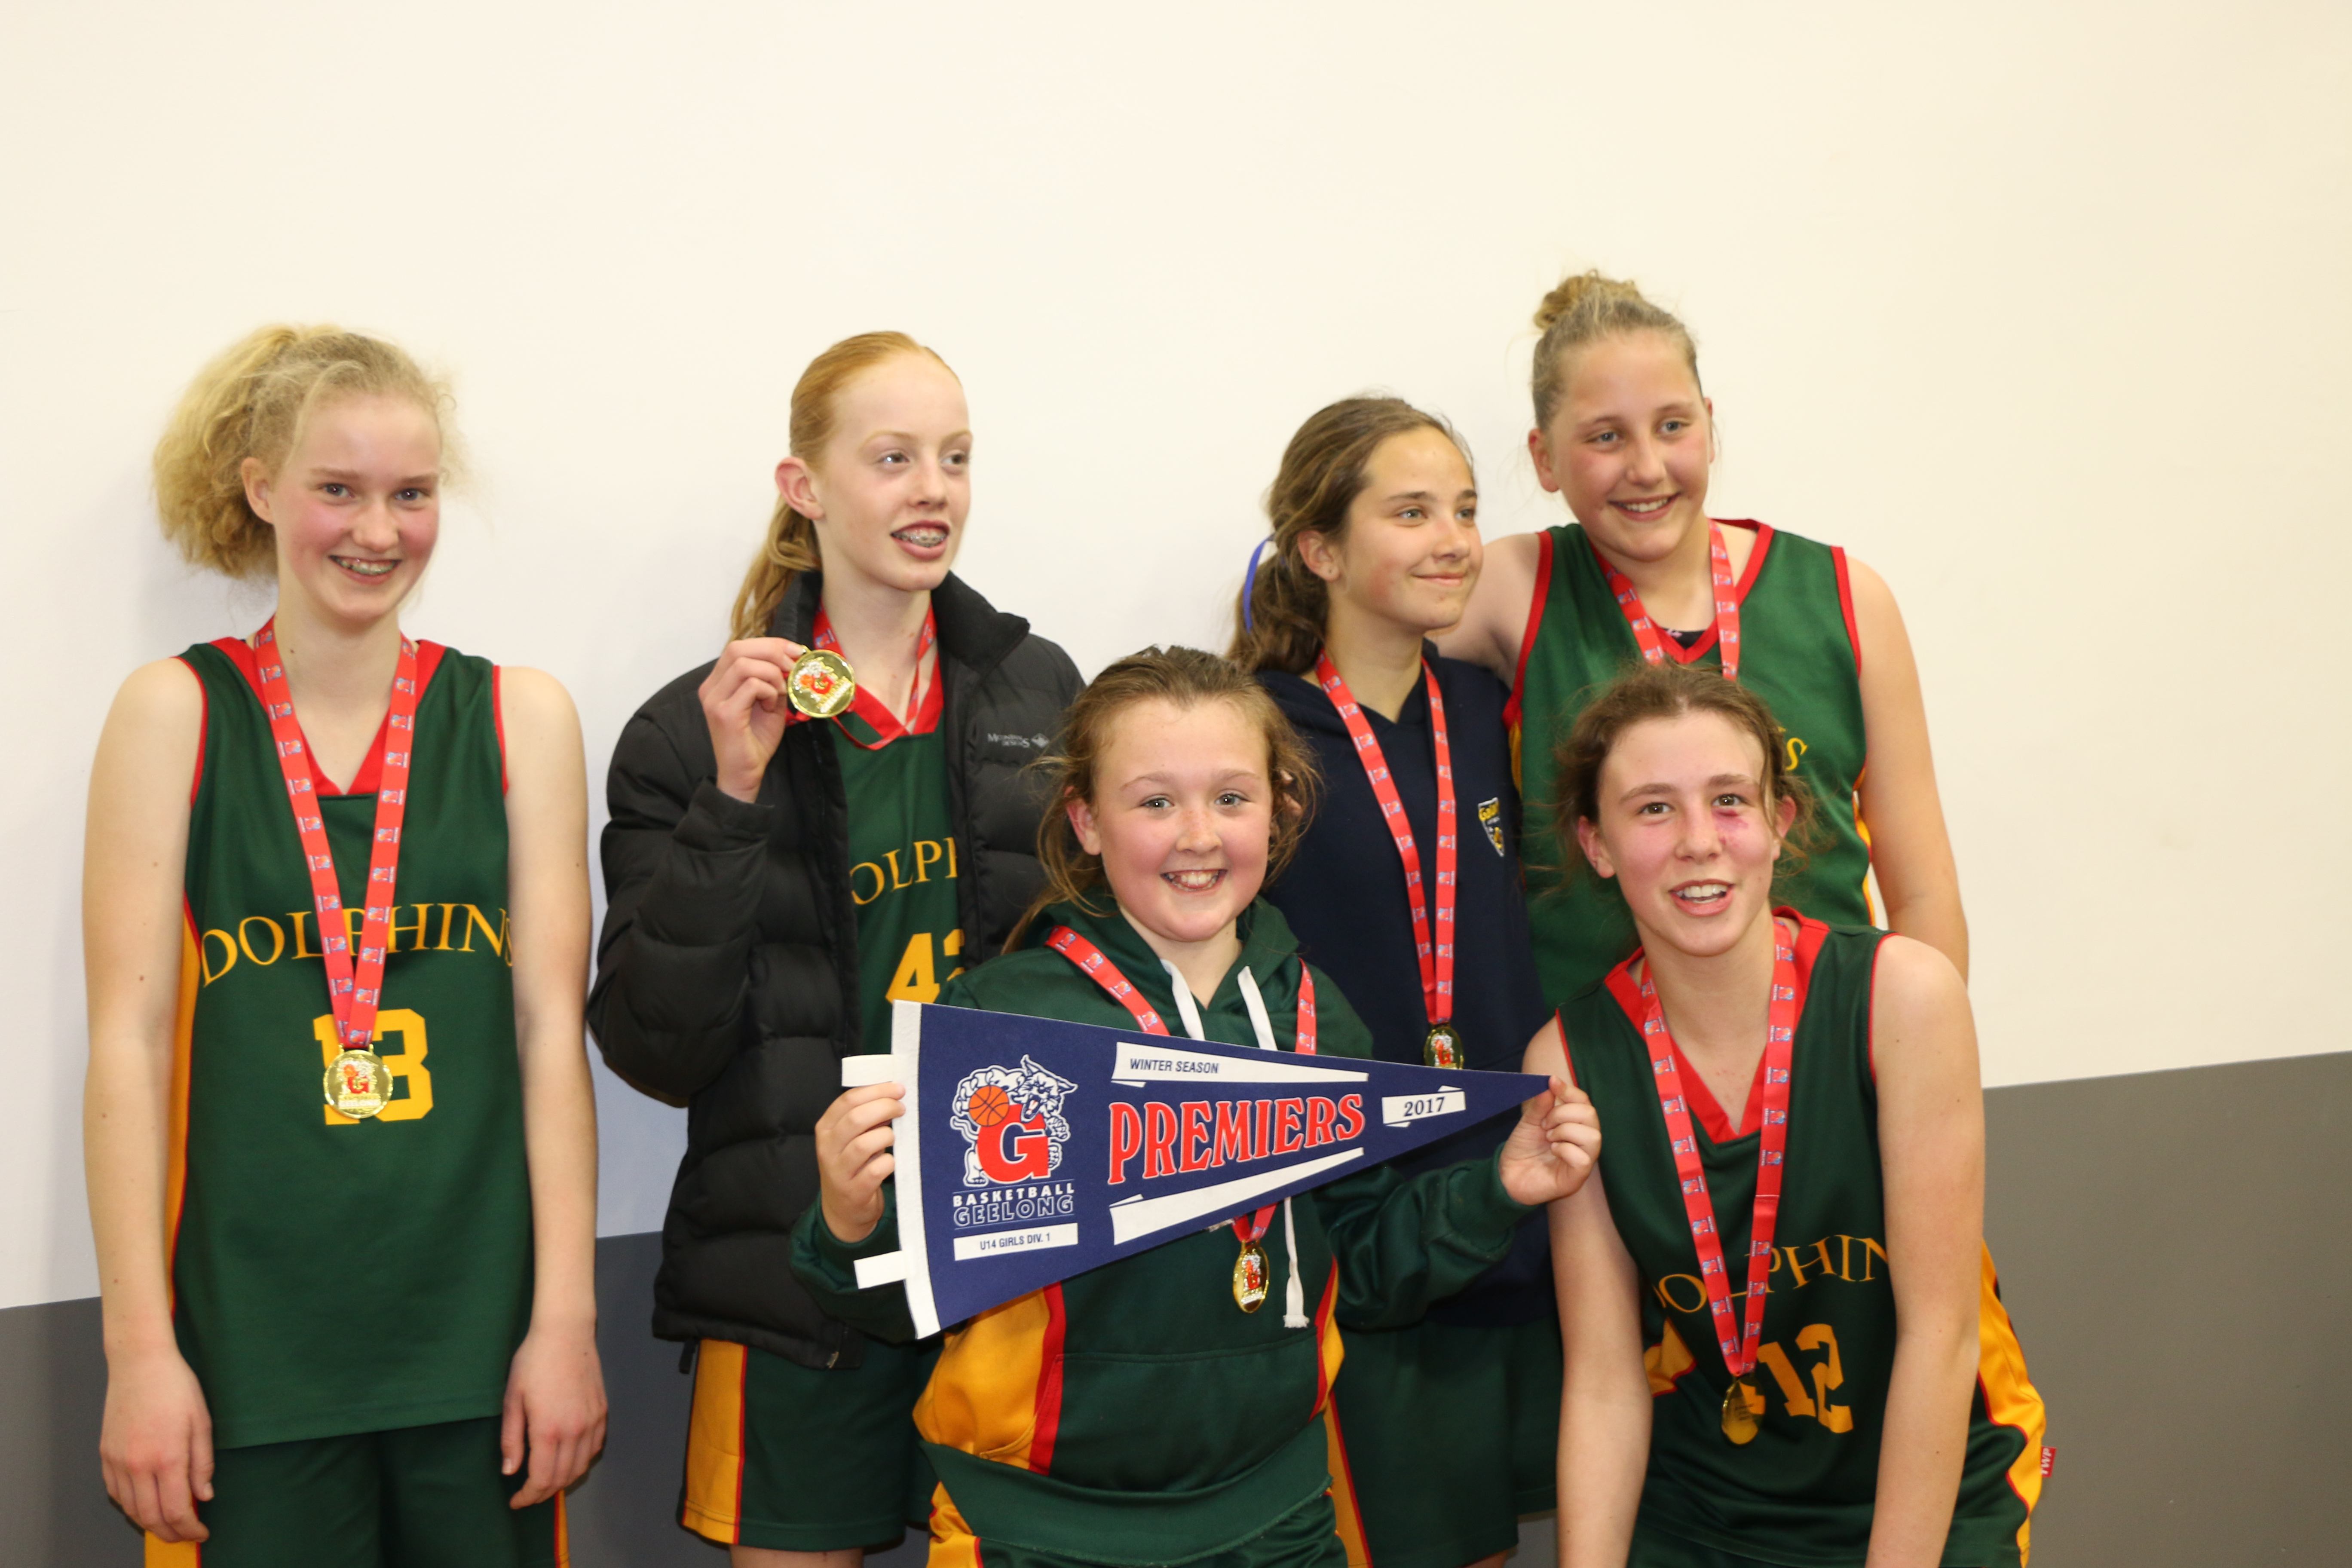 14.1 Girls. Winter Season Premiers